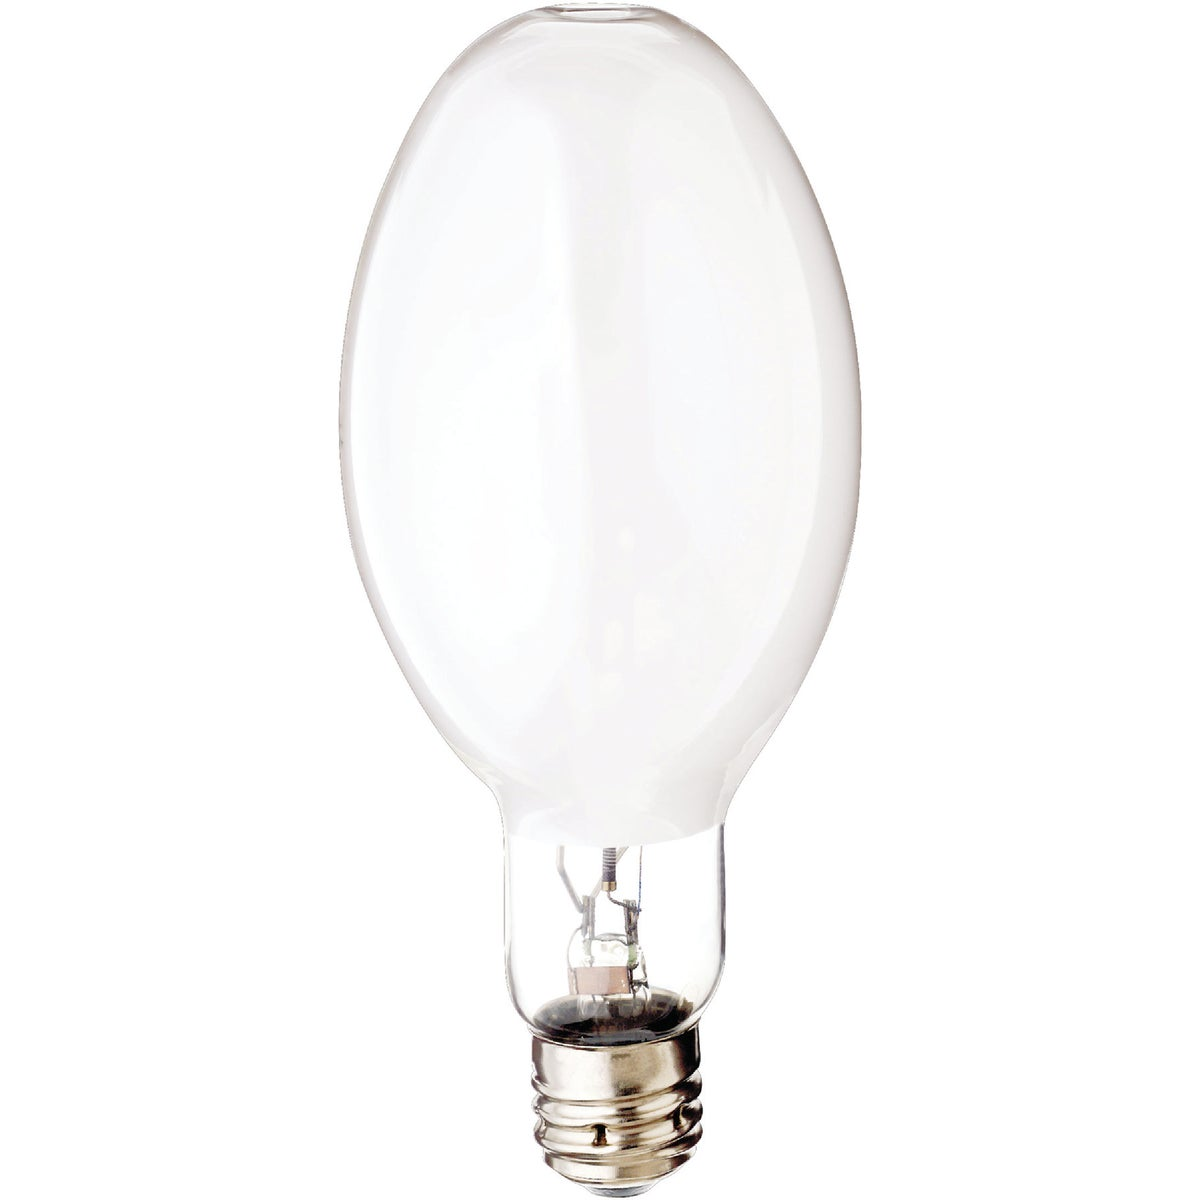 400W METAL HALIDE BULB - 43829 by G E Lighting Incom